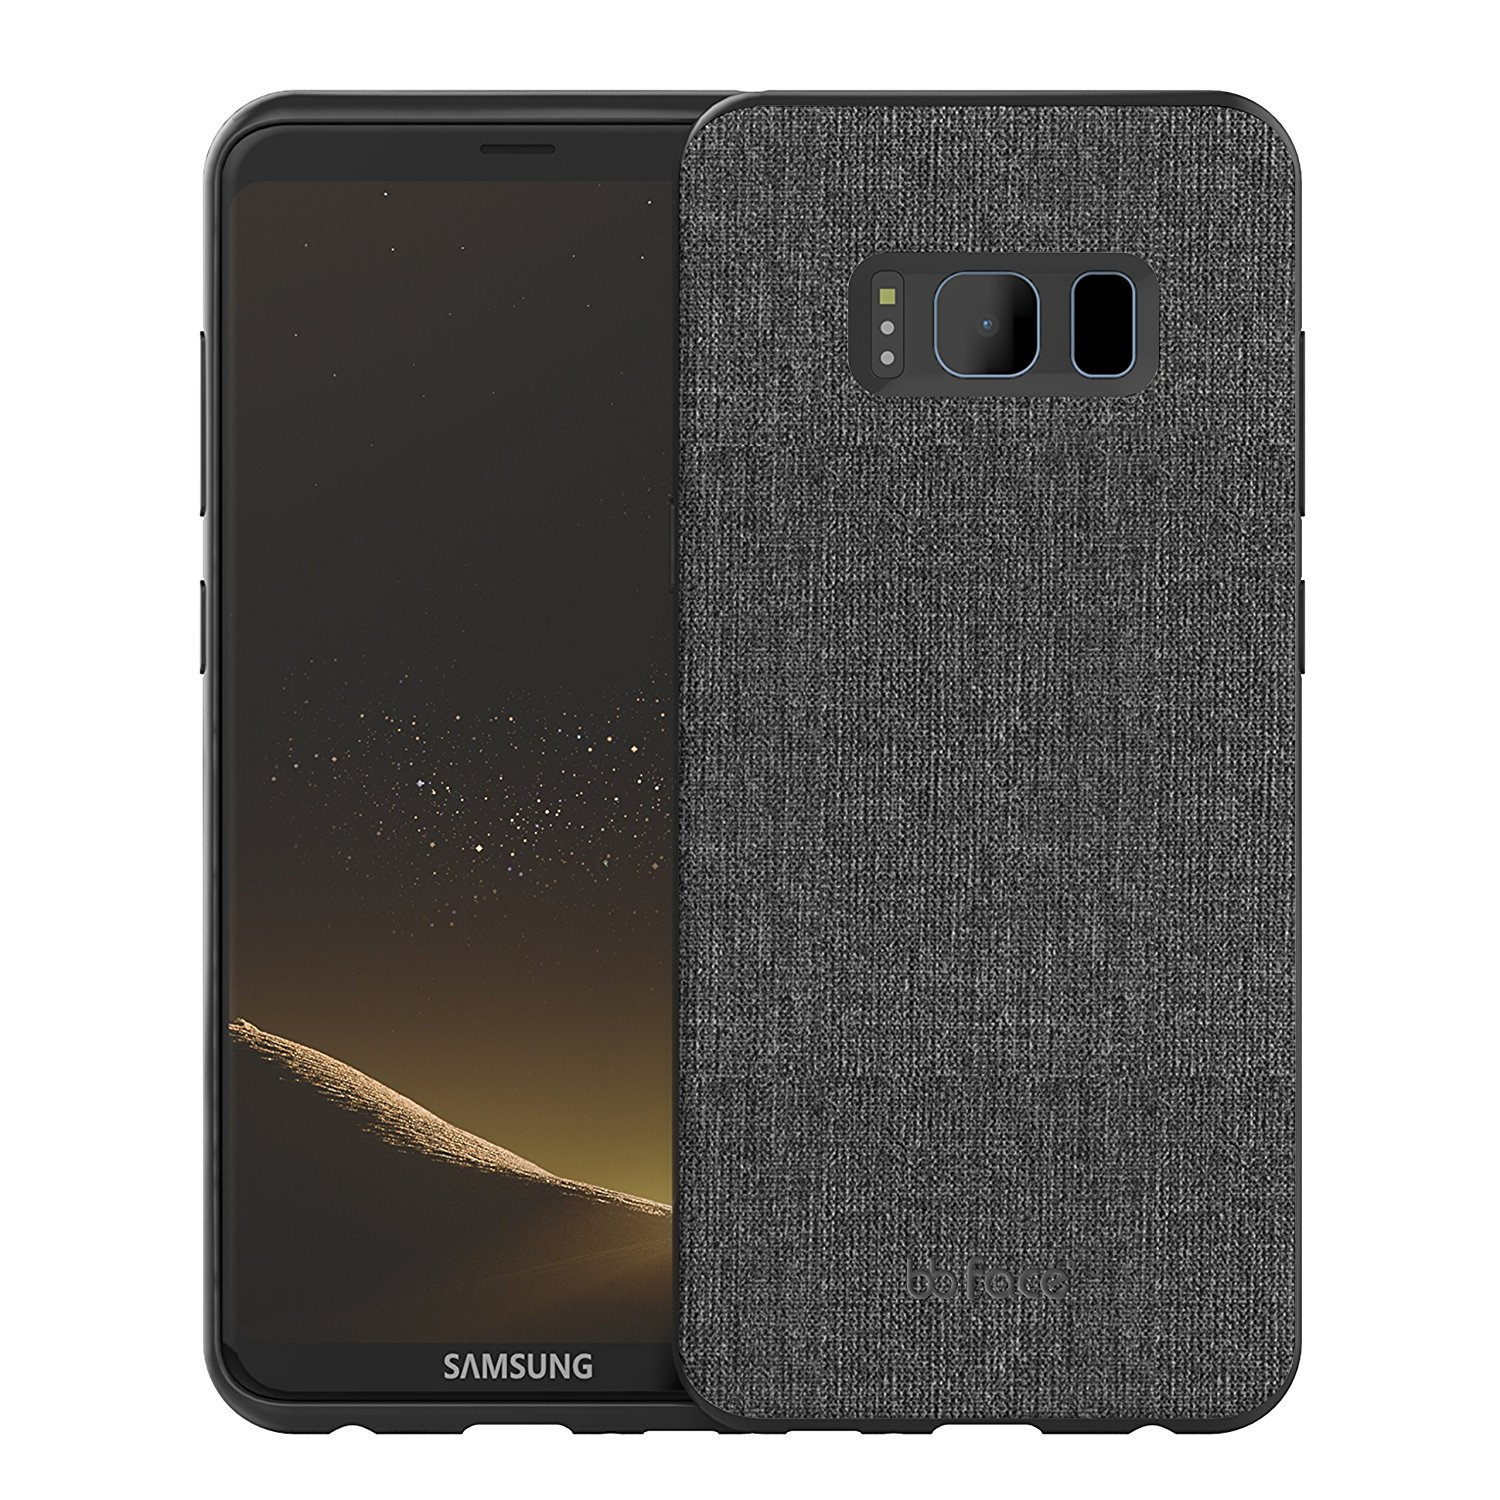 bb face Shockproof Hard PC+ TPU Bumper Case Scratch-Resistant Cover Fabric Case for Samsung Galaxy S8 Plus 6.2 inch